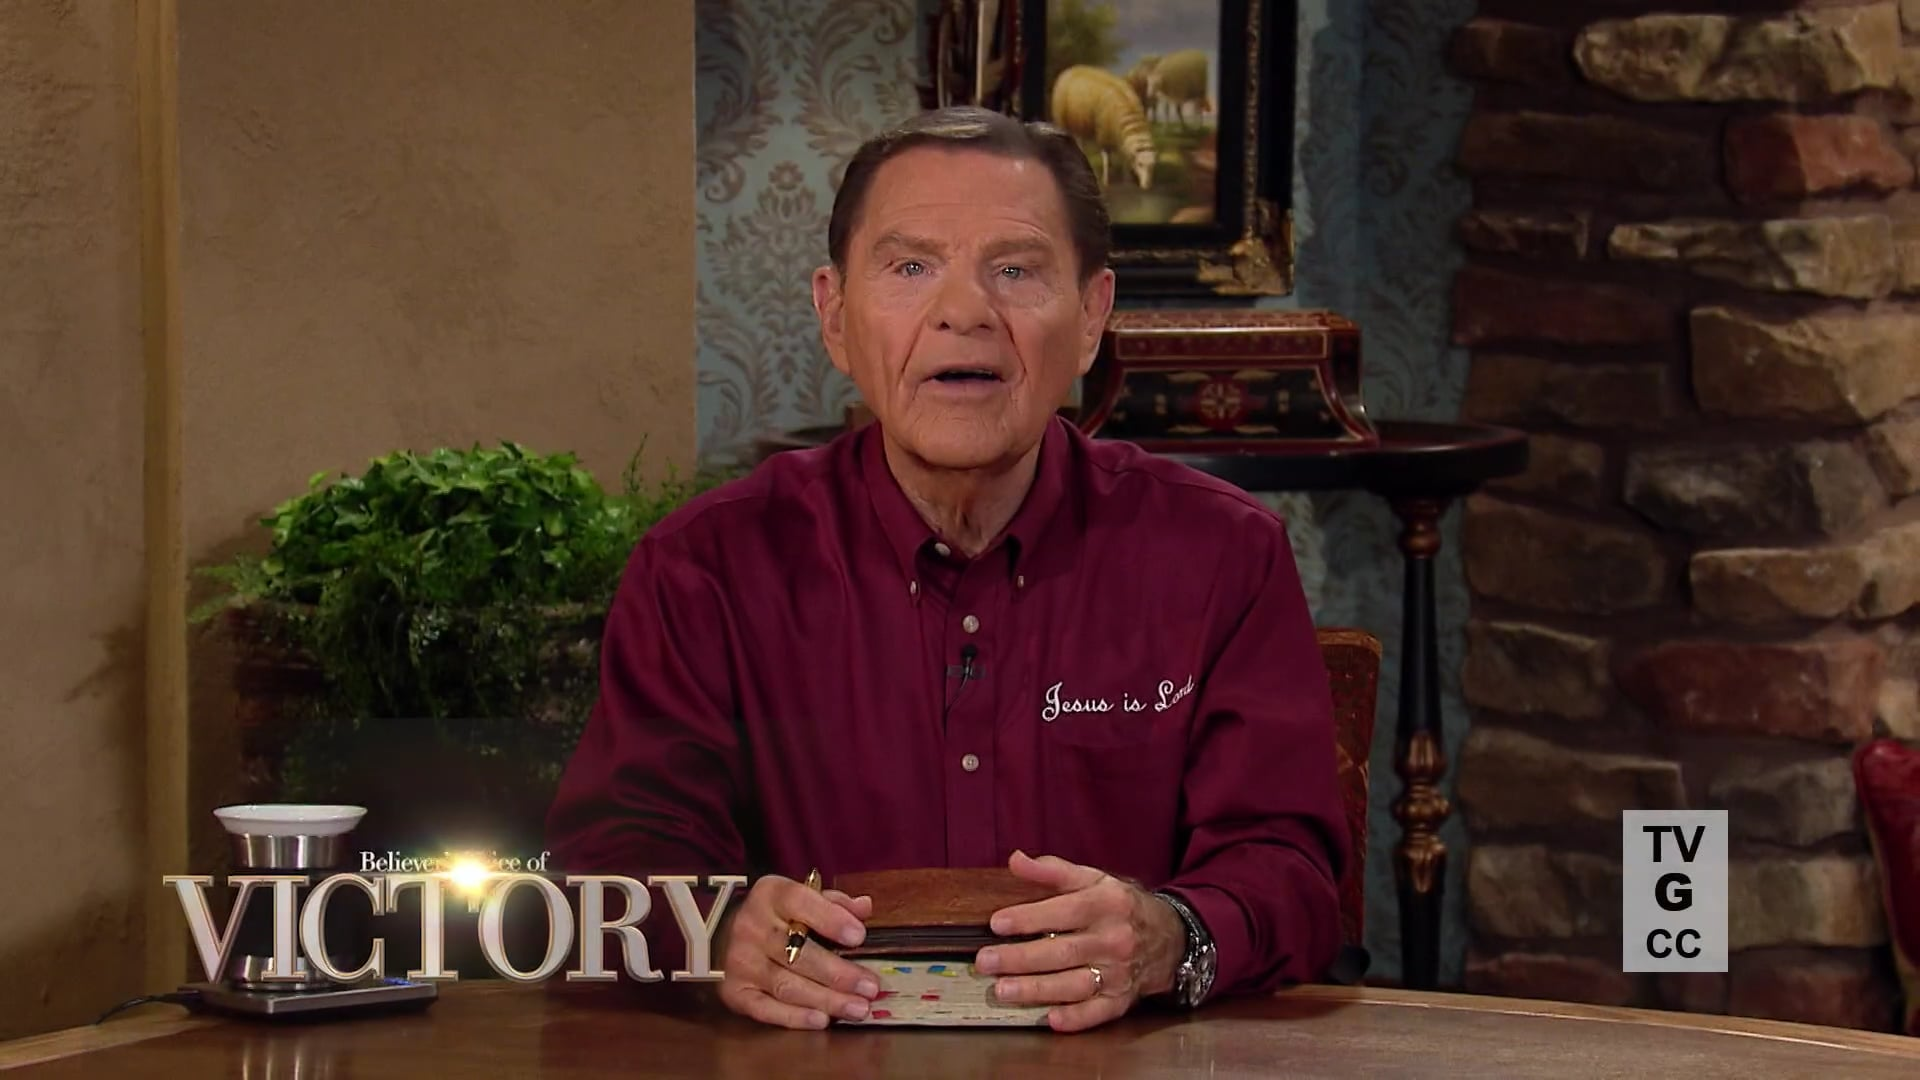 It's time to receive your hundredfold return! Watch Believer's Voice of Victory as Kenneth Copeland teaches why sowing seed doesn't just provide what you need—it takes you into the overflow. Learn how to claim what rightfully belongs to you!